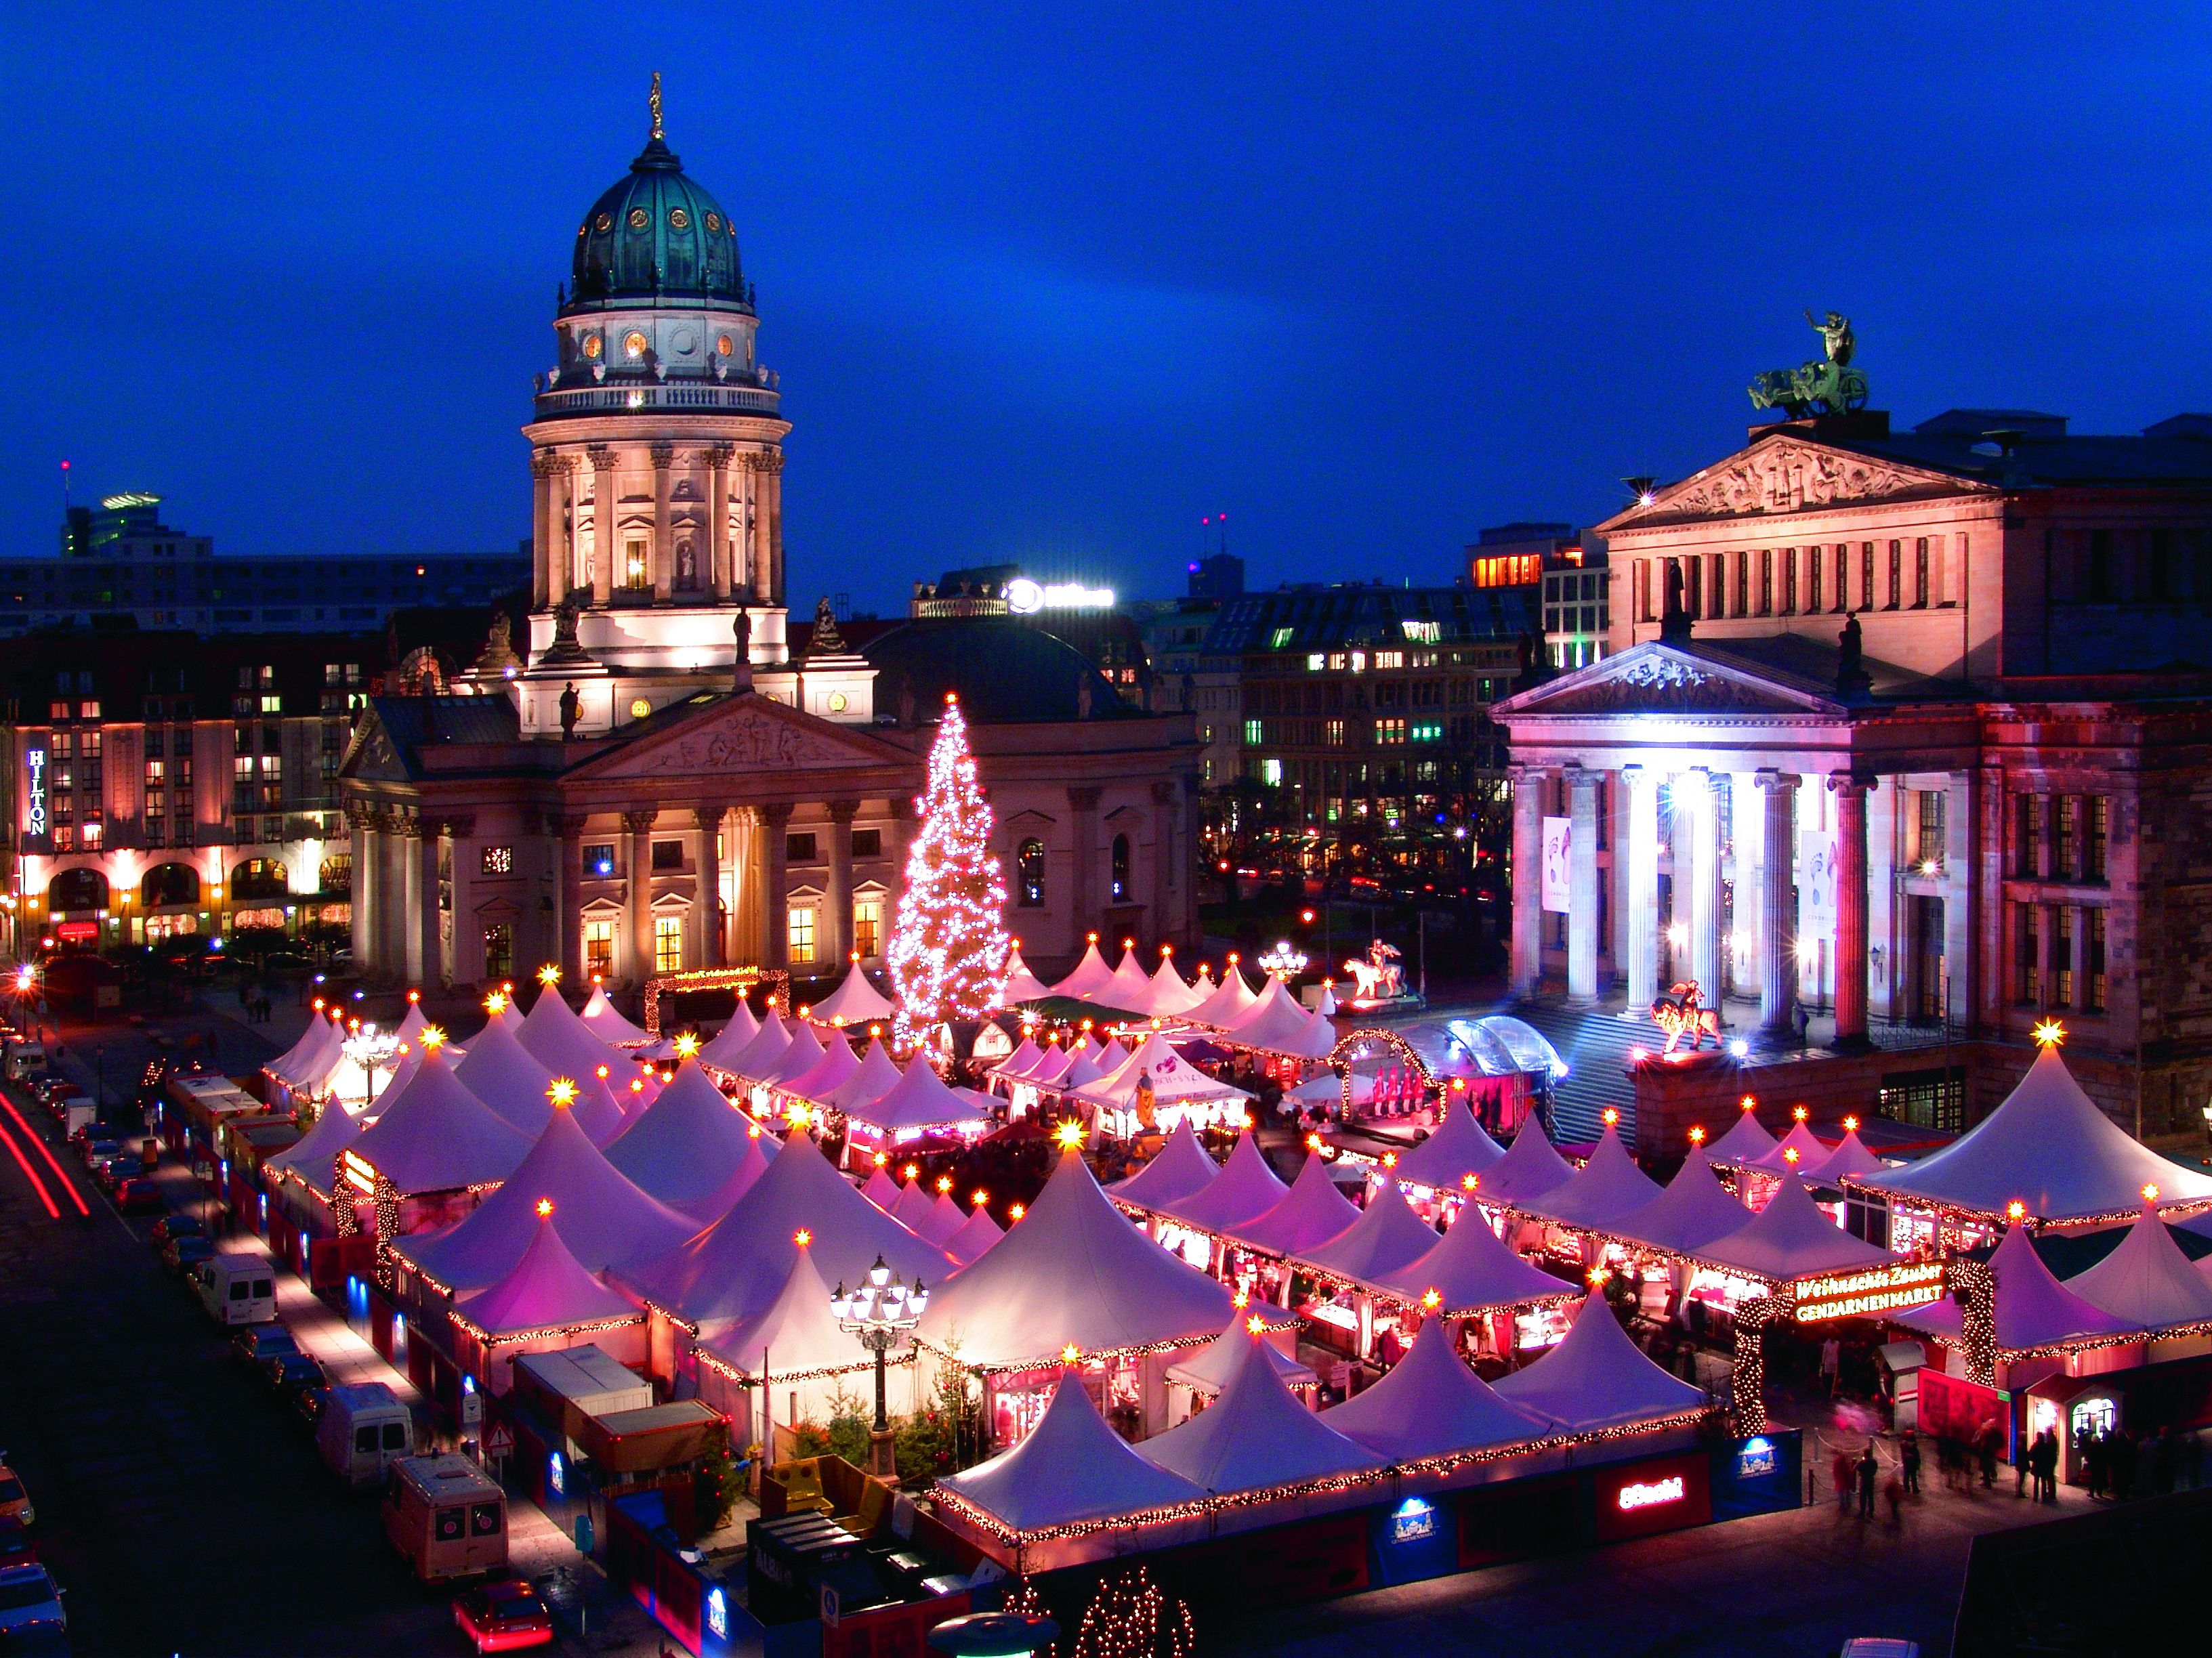 Things to Do at the Famous Nuremberg Christmas Market